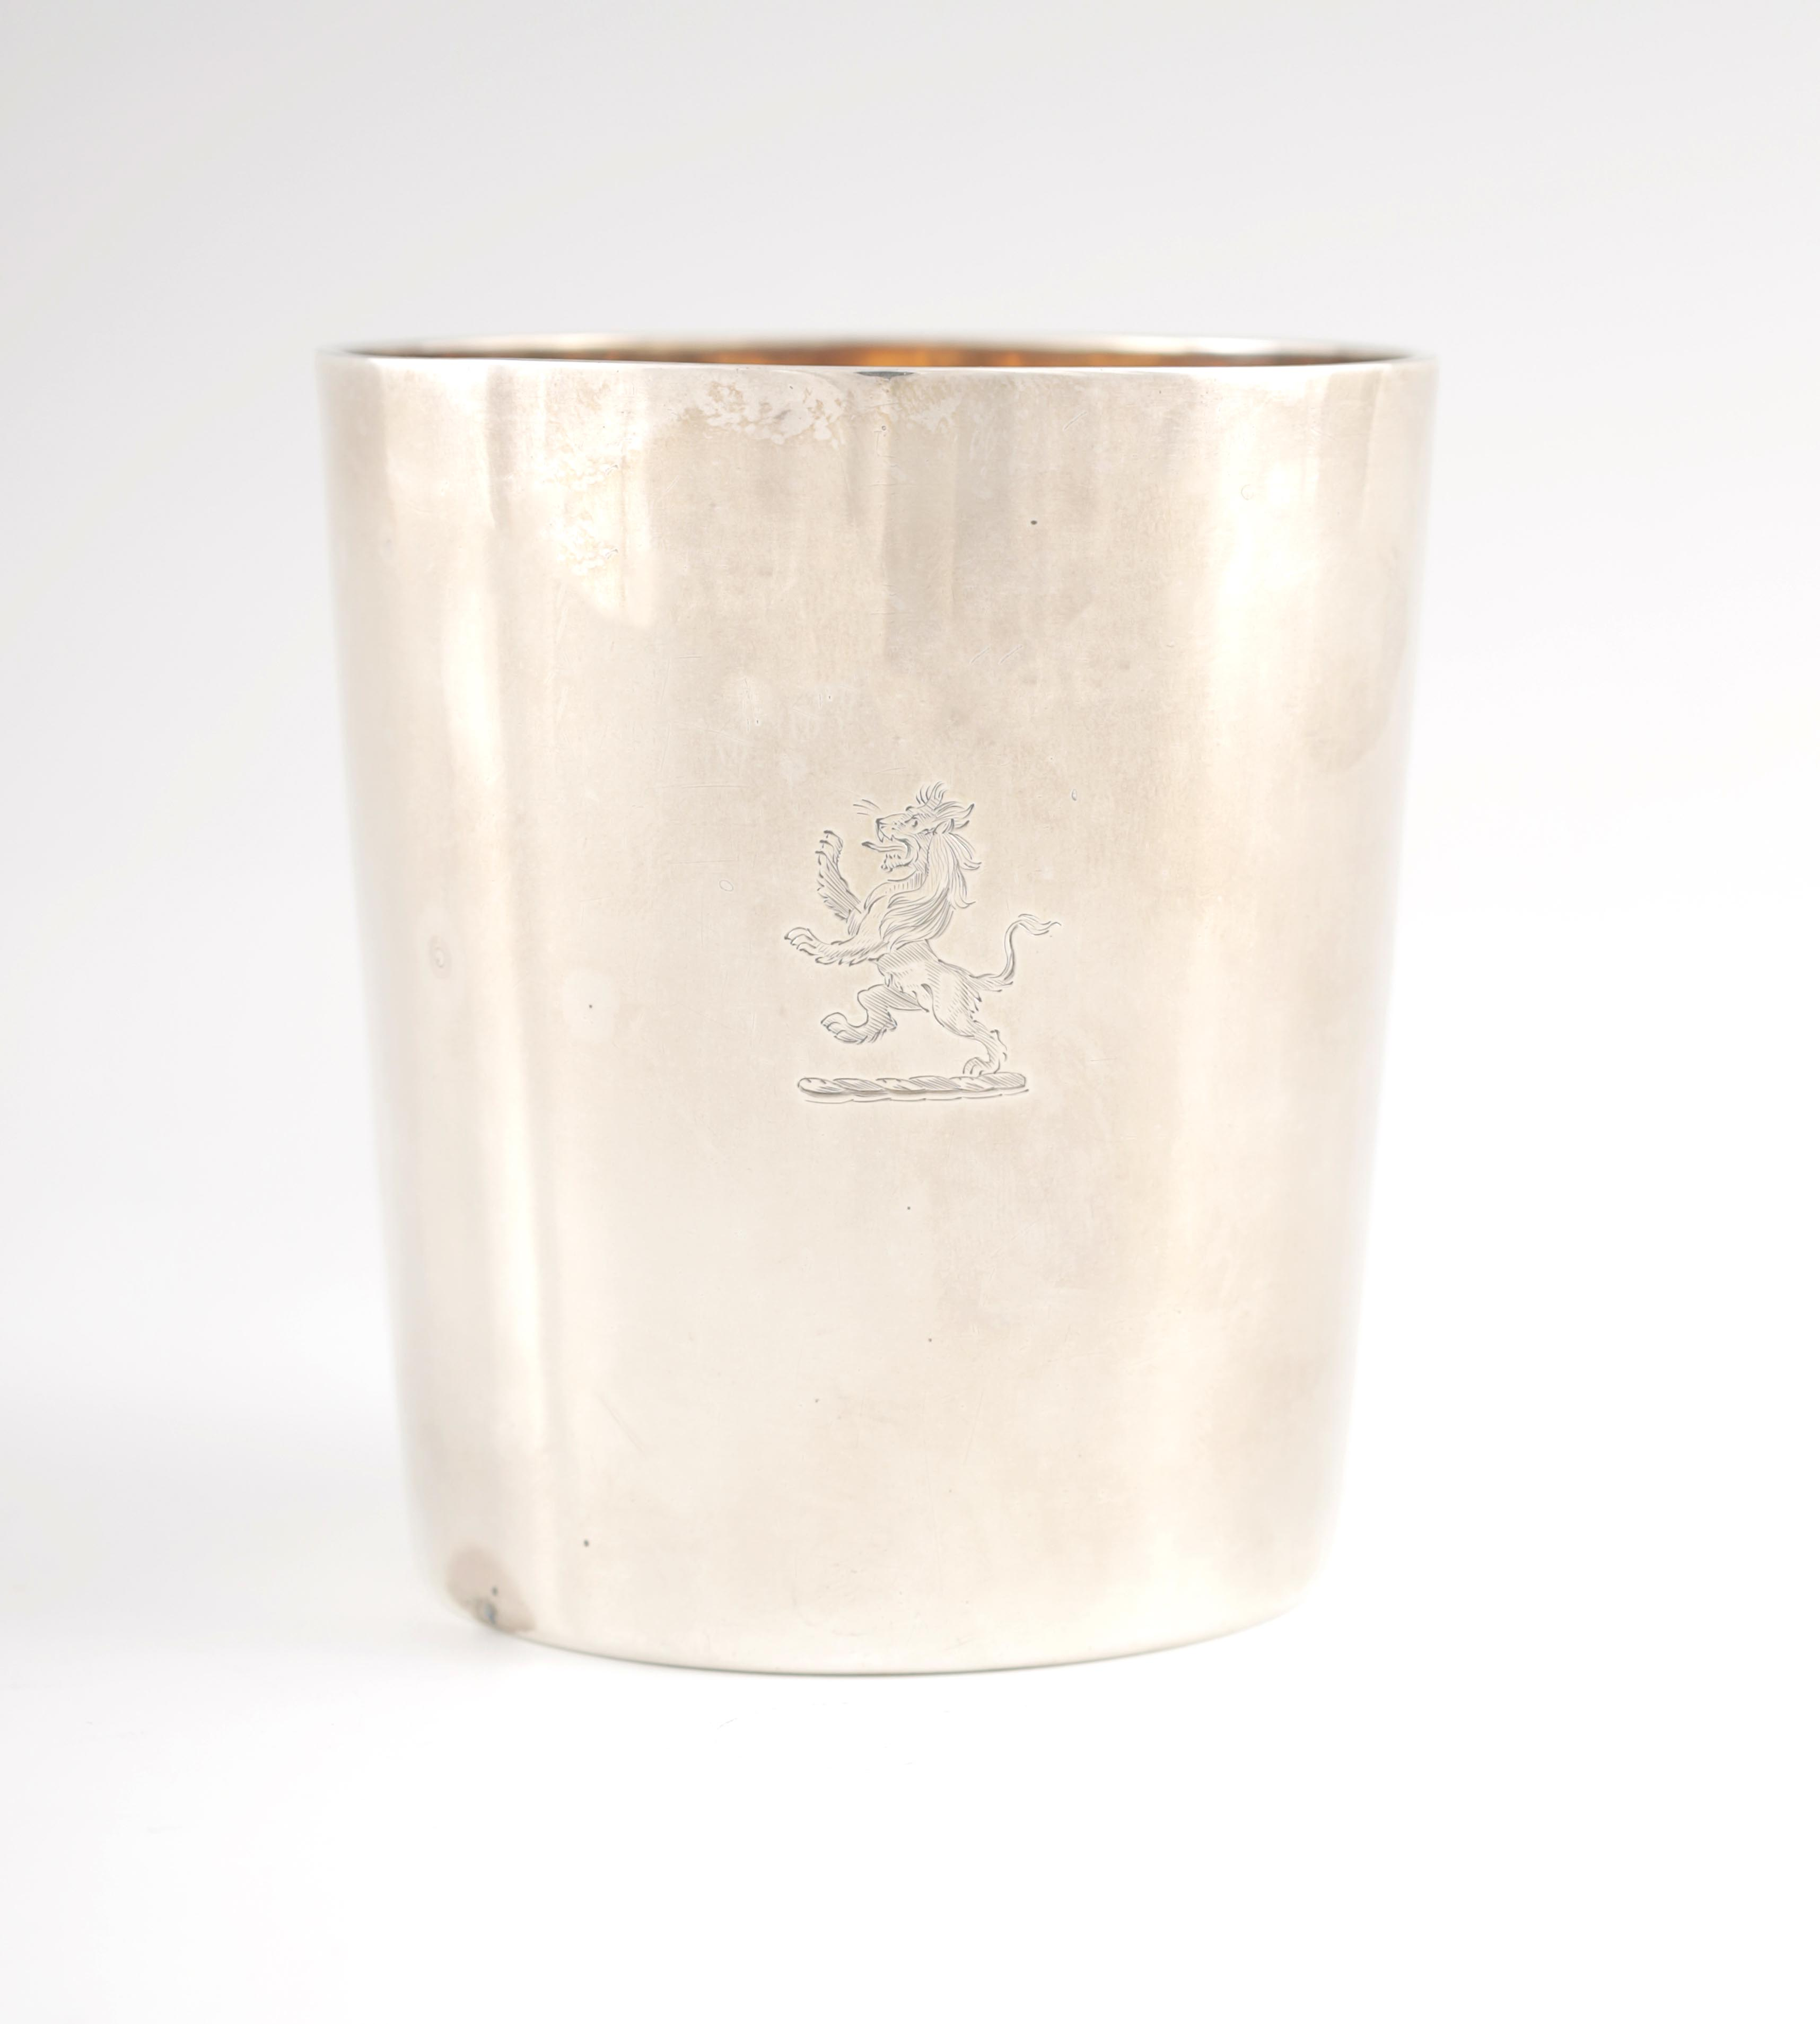 A GEORGE III SILVER BEAKER with gilt interior and coat of arms to the front, London 1802 9cm high